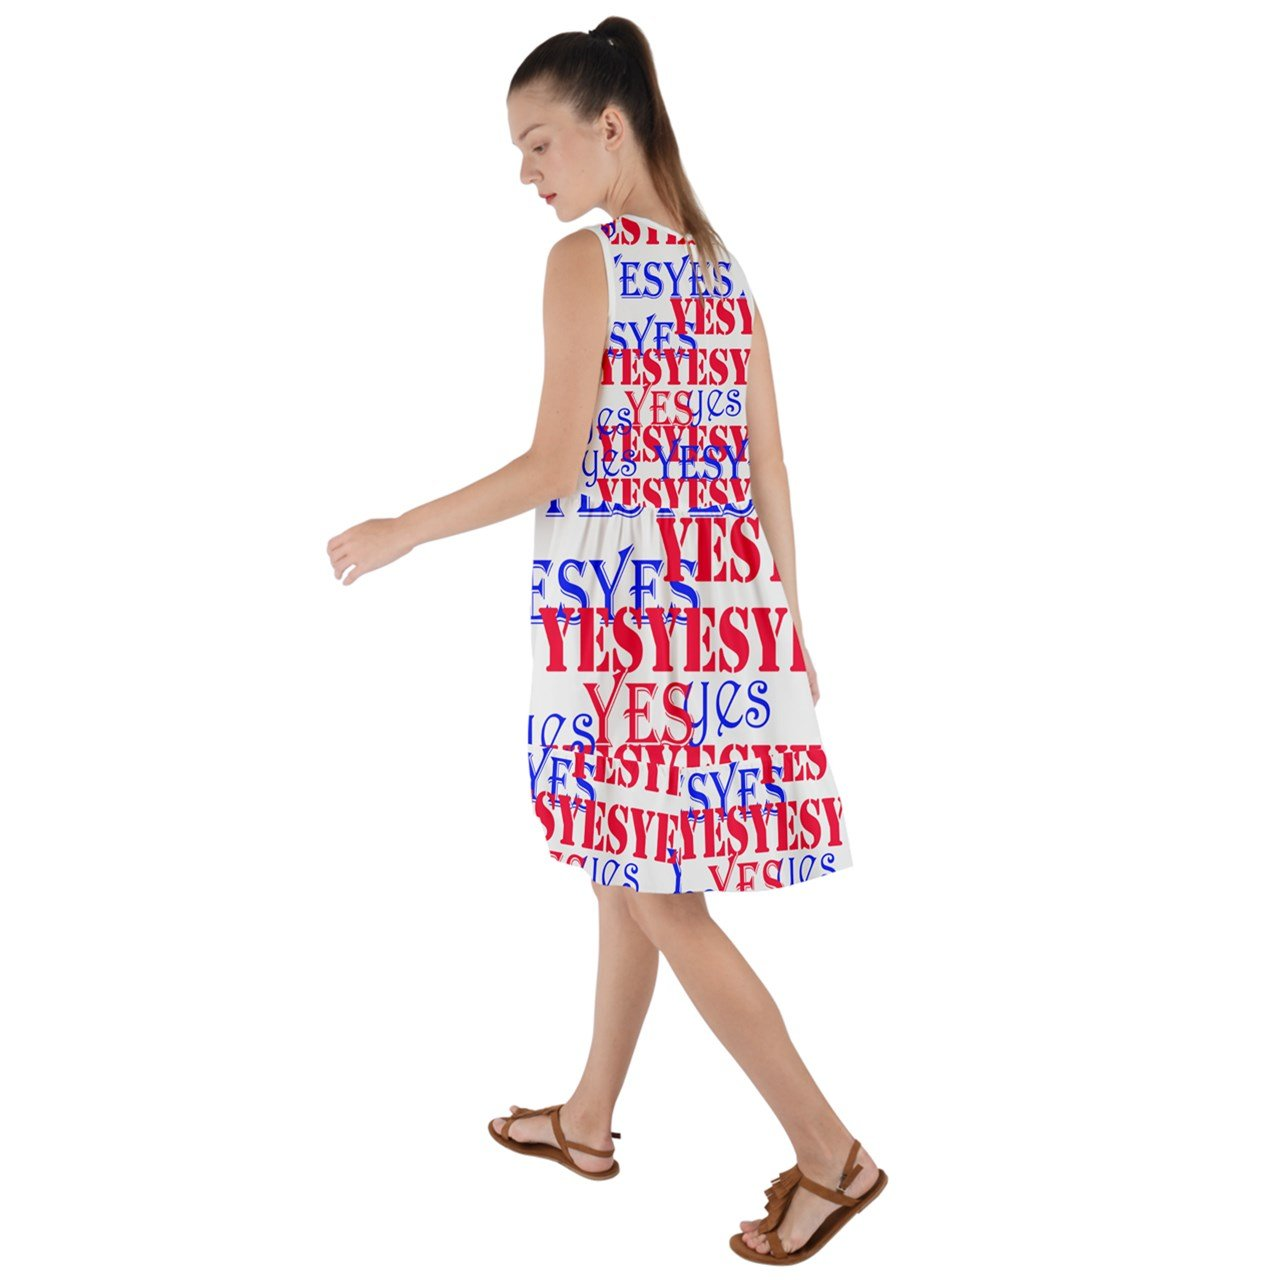 Stay Positive! The Yes Frill Swing Dress